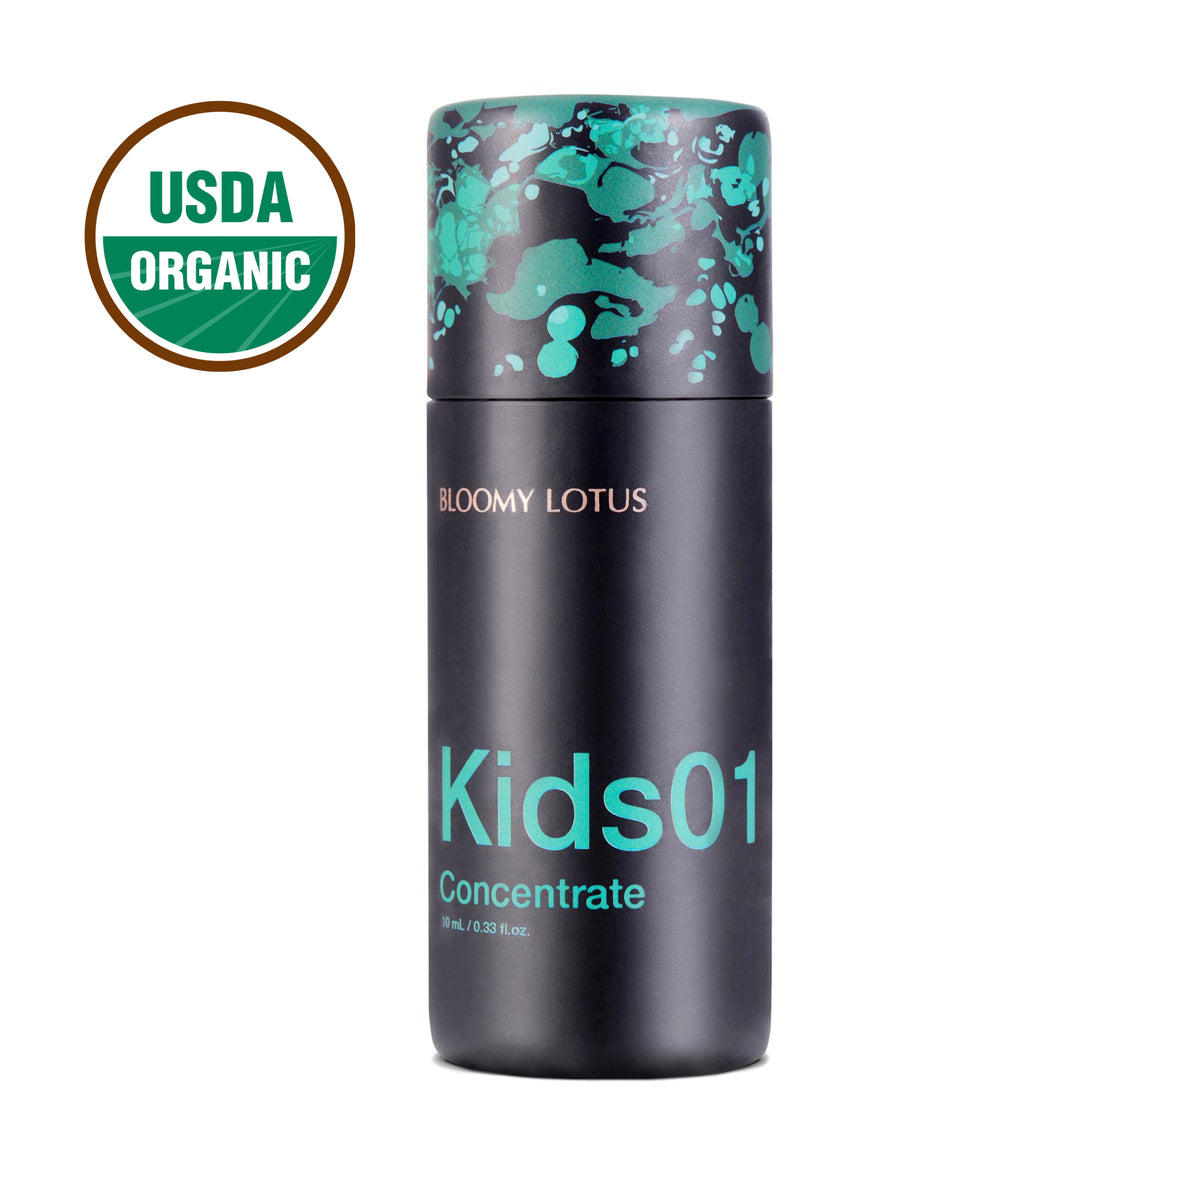 Bloomy Lotus Kids01 Concentration Essential Oil, 10 ml